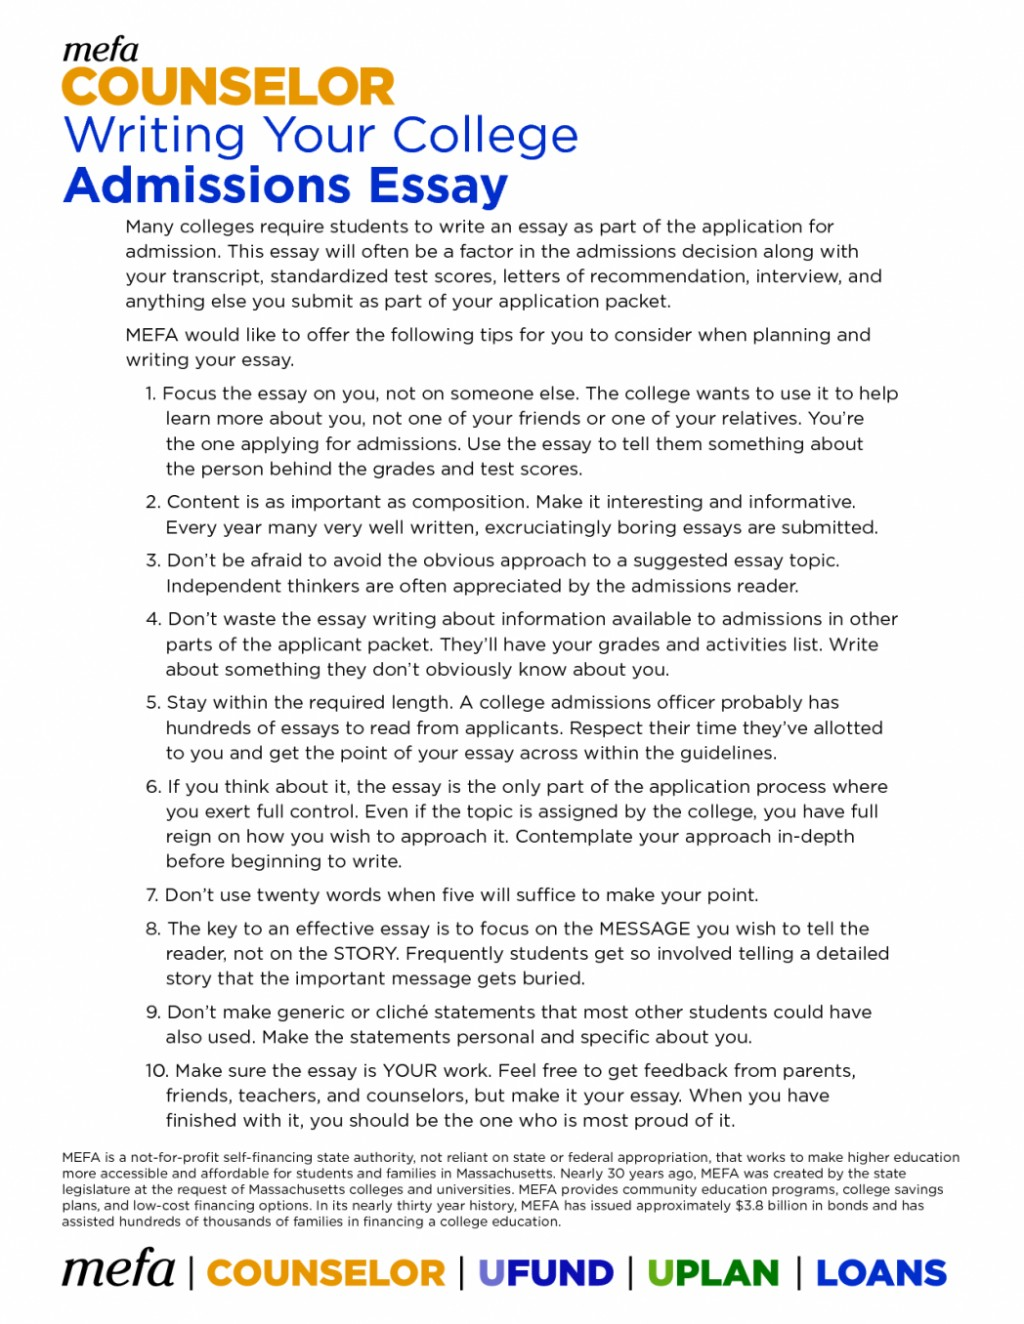 016 Essay Example College Writing Help High School How Many Paragraphs Should Application Wuaom Pages Words Long What About Formatted In Mla Format 1048x1356 Are An Unforgettable Introduction Apa Paper Have There Large